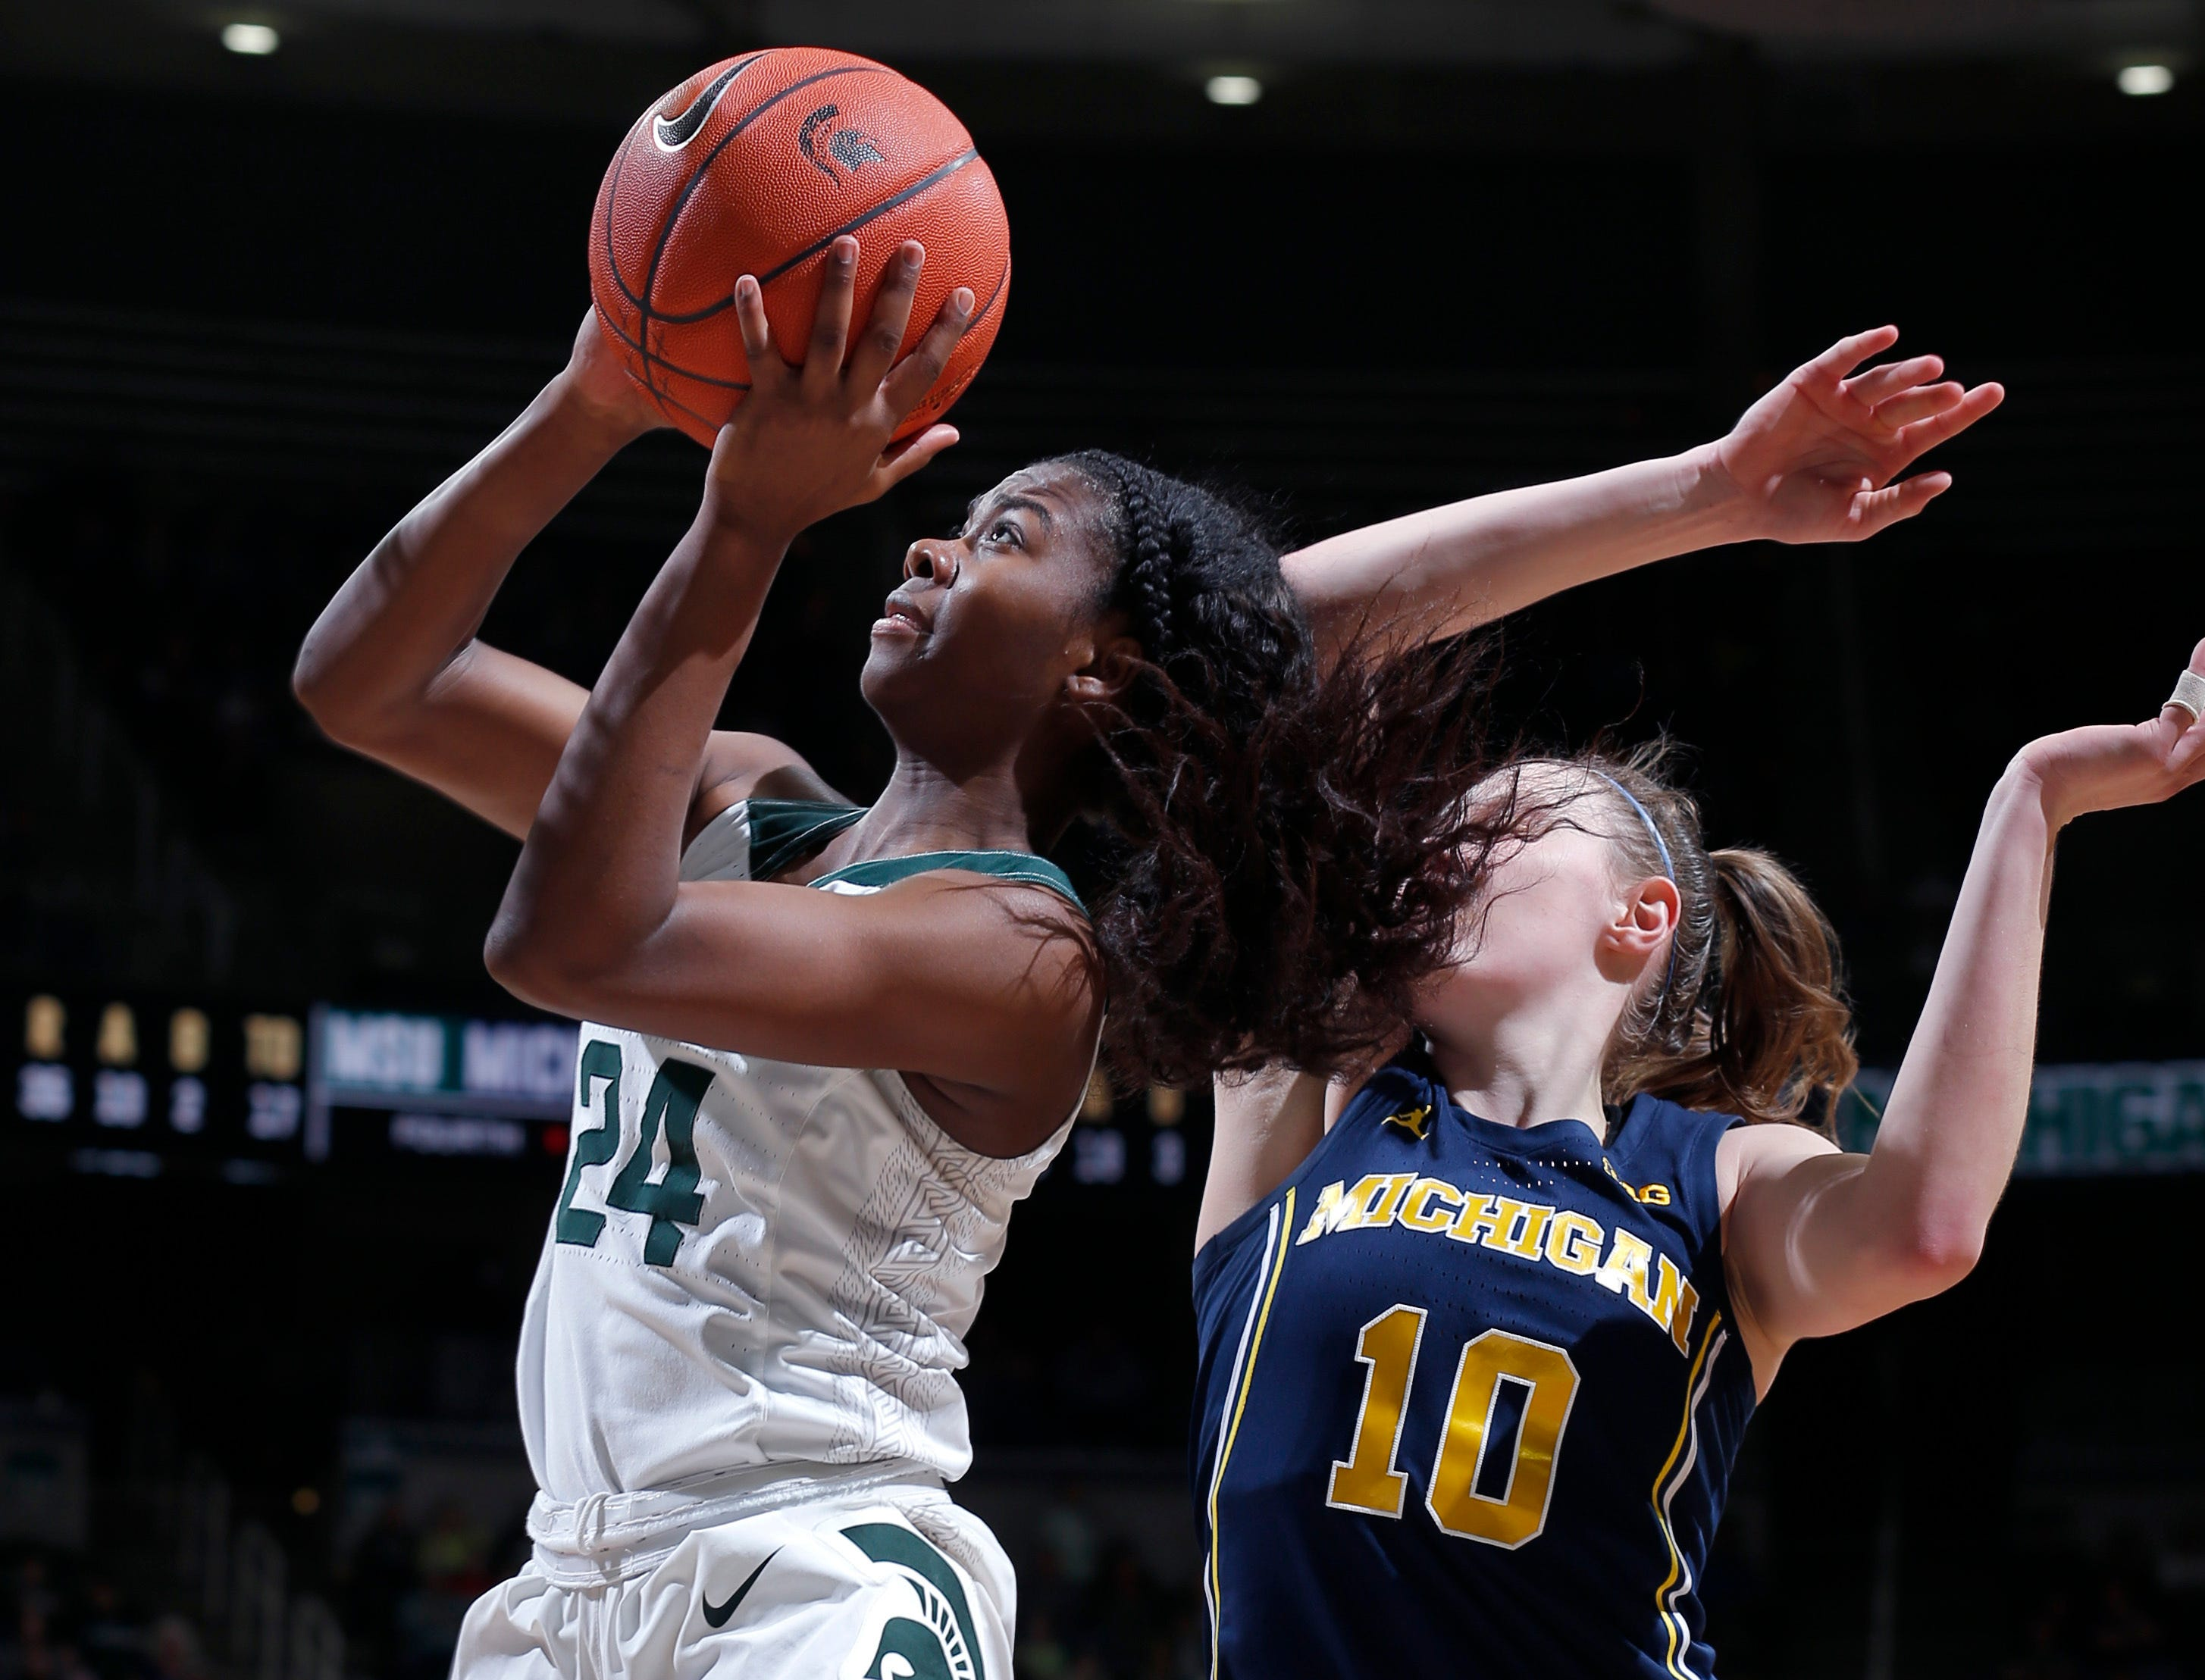 Michigan State's Nia Clouden, left, goes up for a layup against Michigan's Nicole Munger (10) during the fourth quarter.